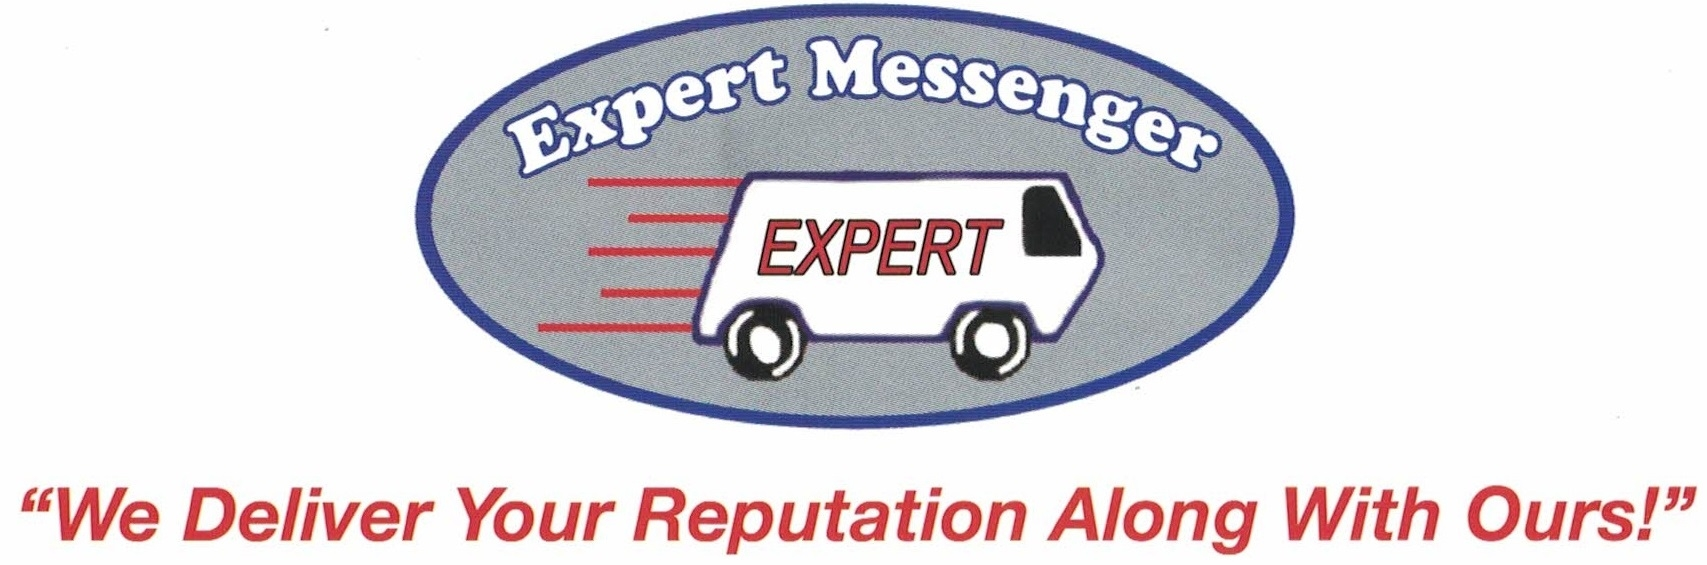 Logo for Expert Messenger, Inc.